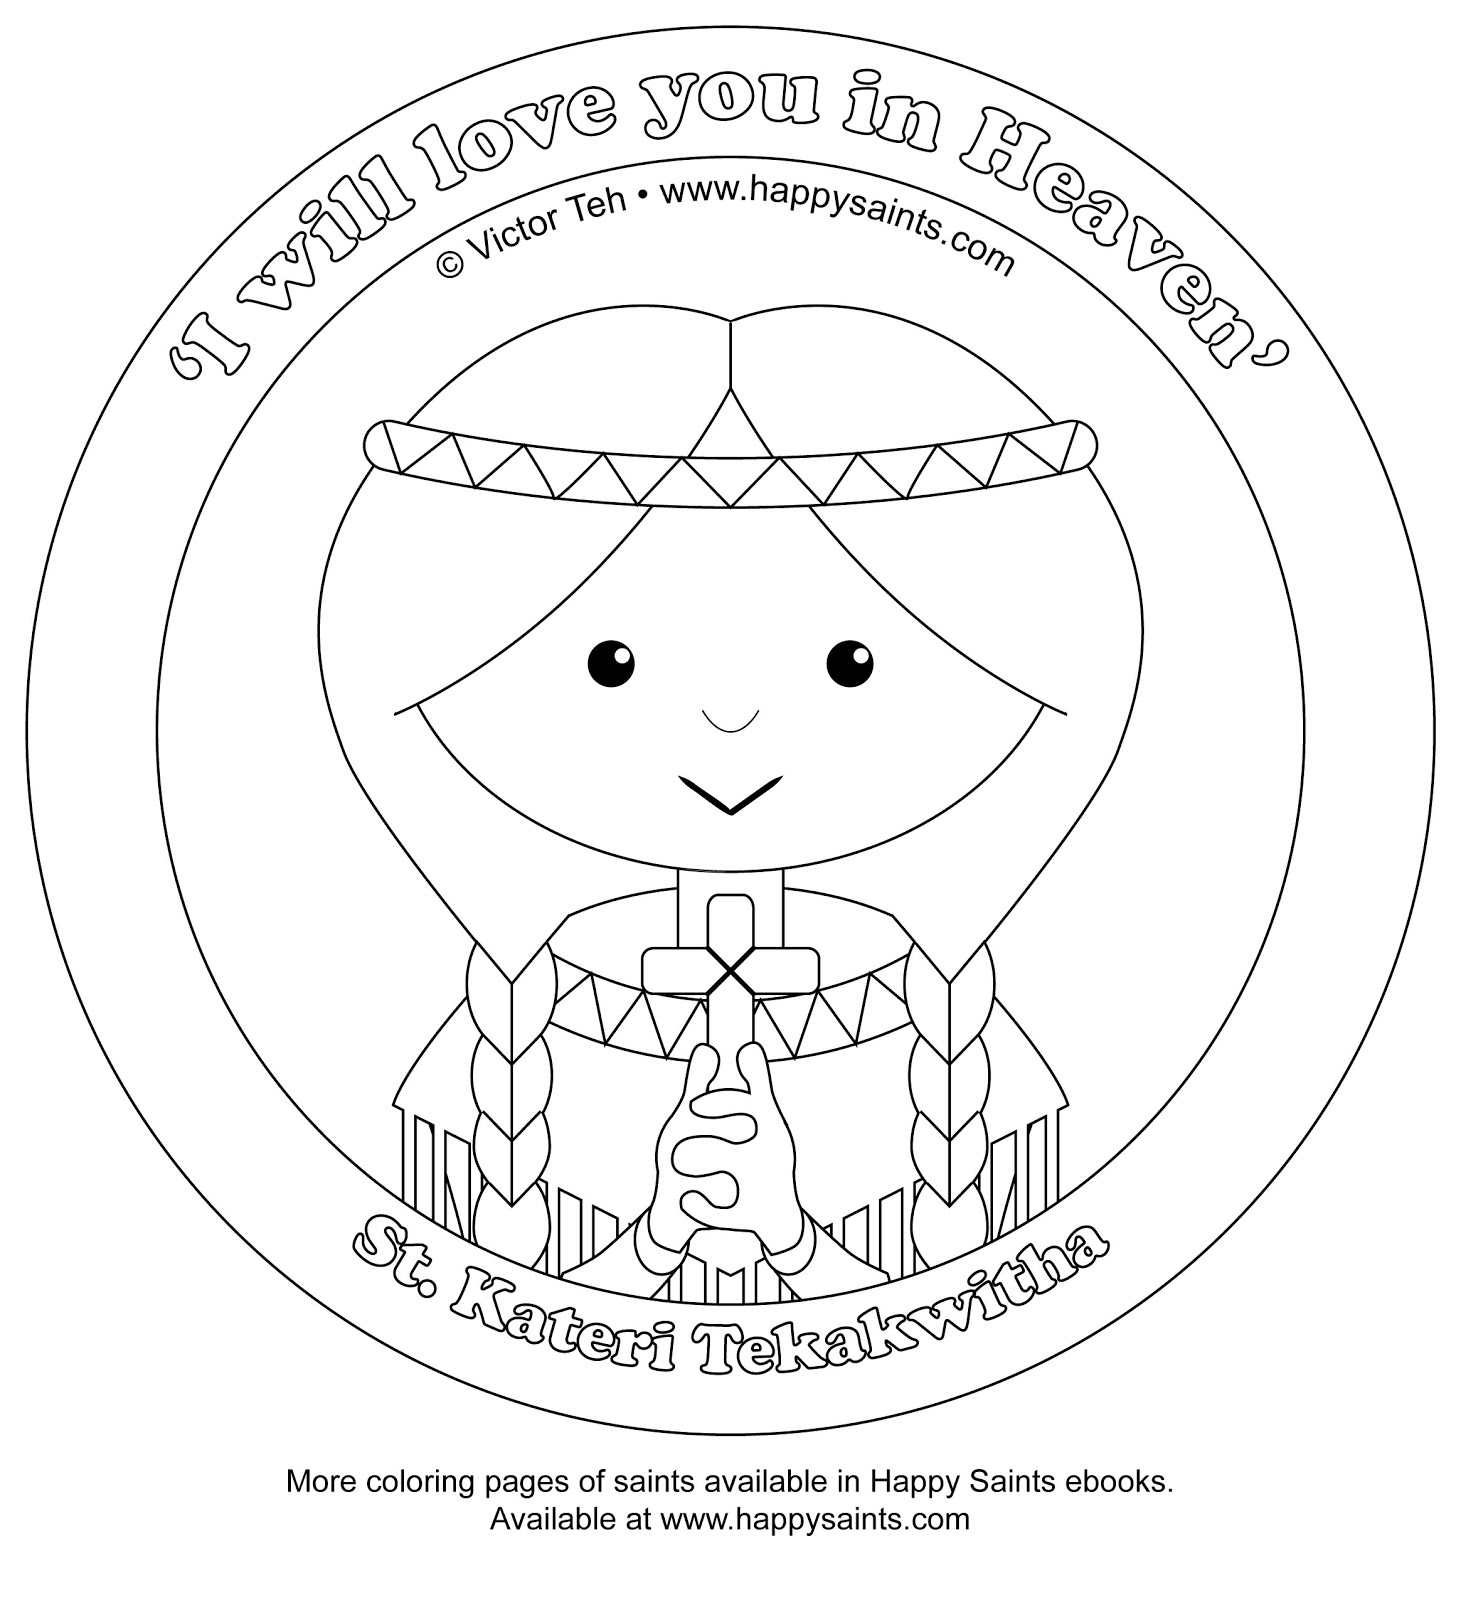 Happy Saints Coloring Pages Of St Pedro And St Kateri